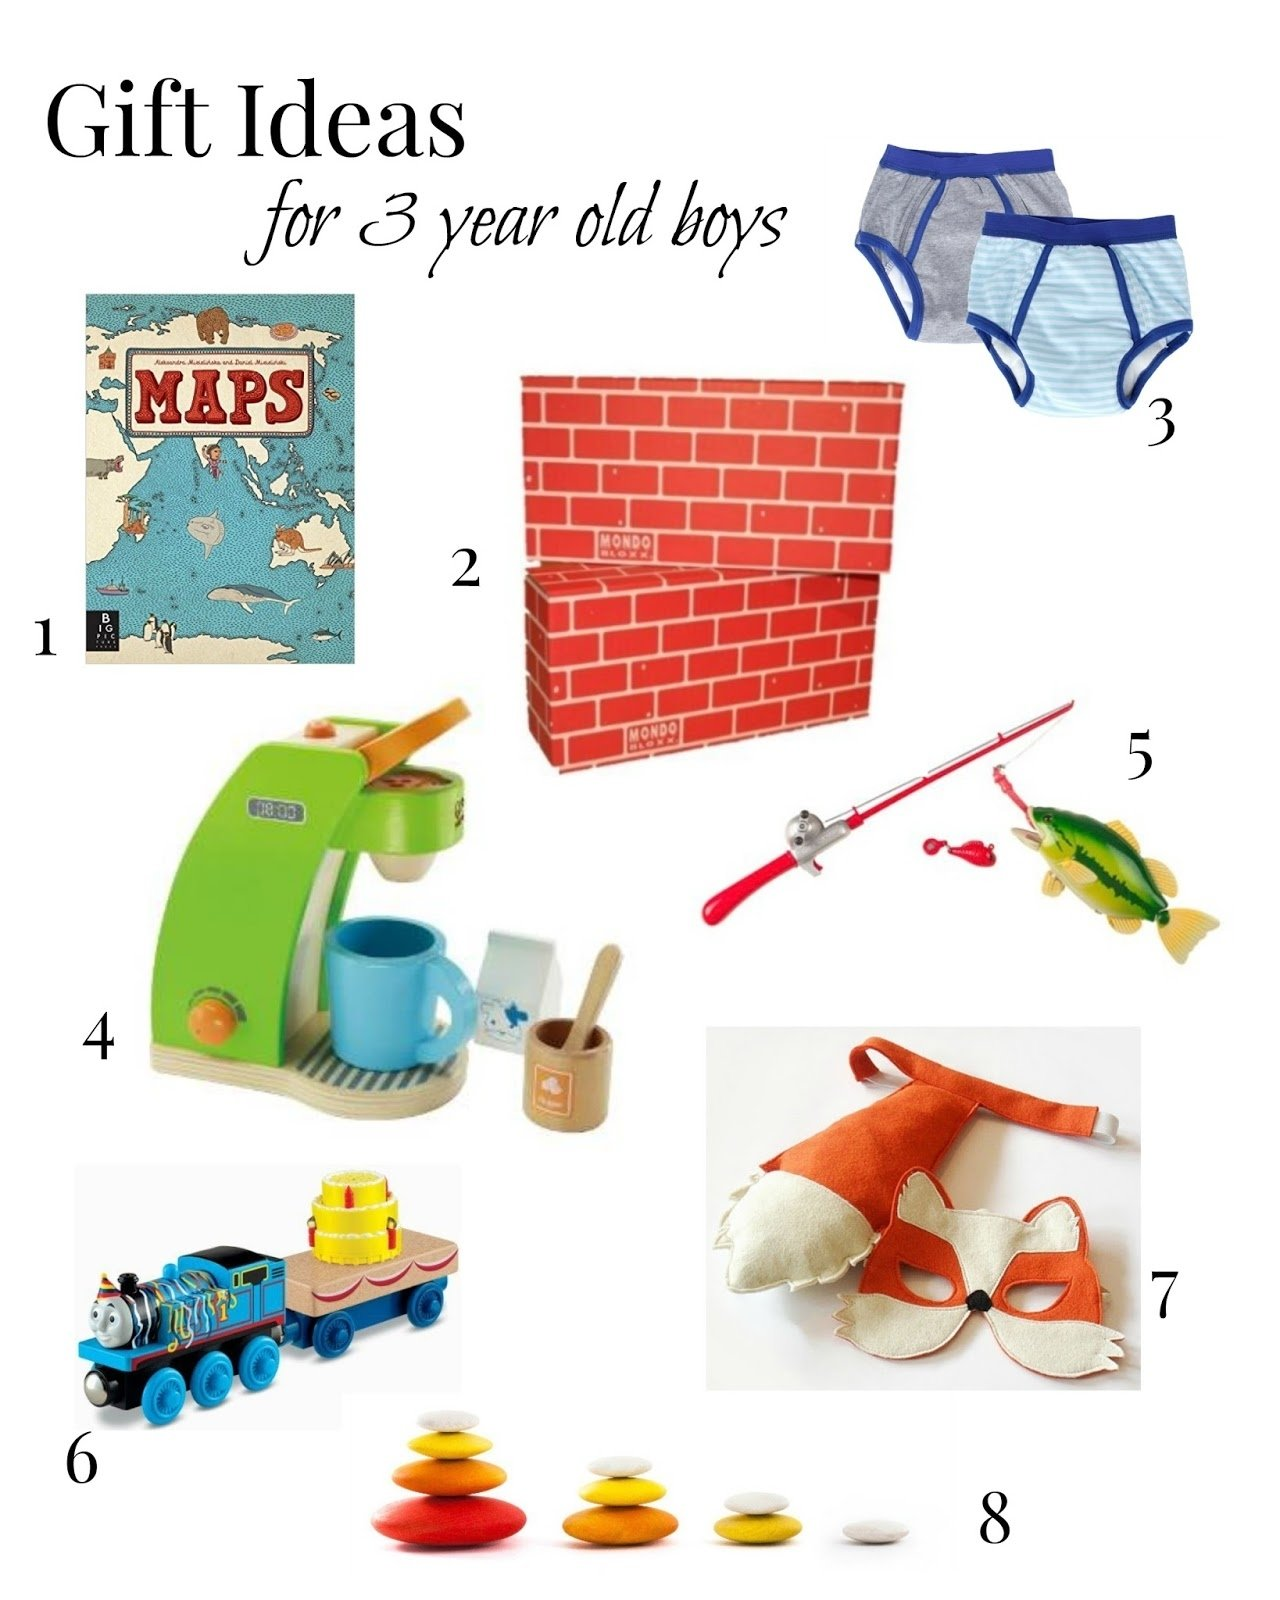 10 Cute Gift Ideas For 3 Year Olds pink to green friday favorites gift ideas for 3 year old boys 10 2020